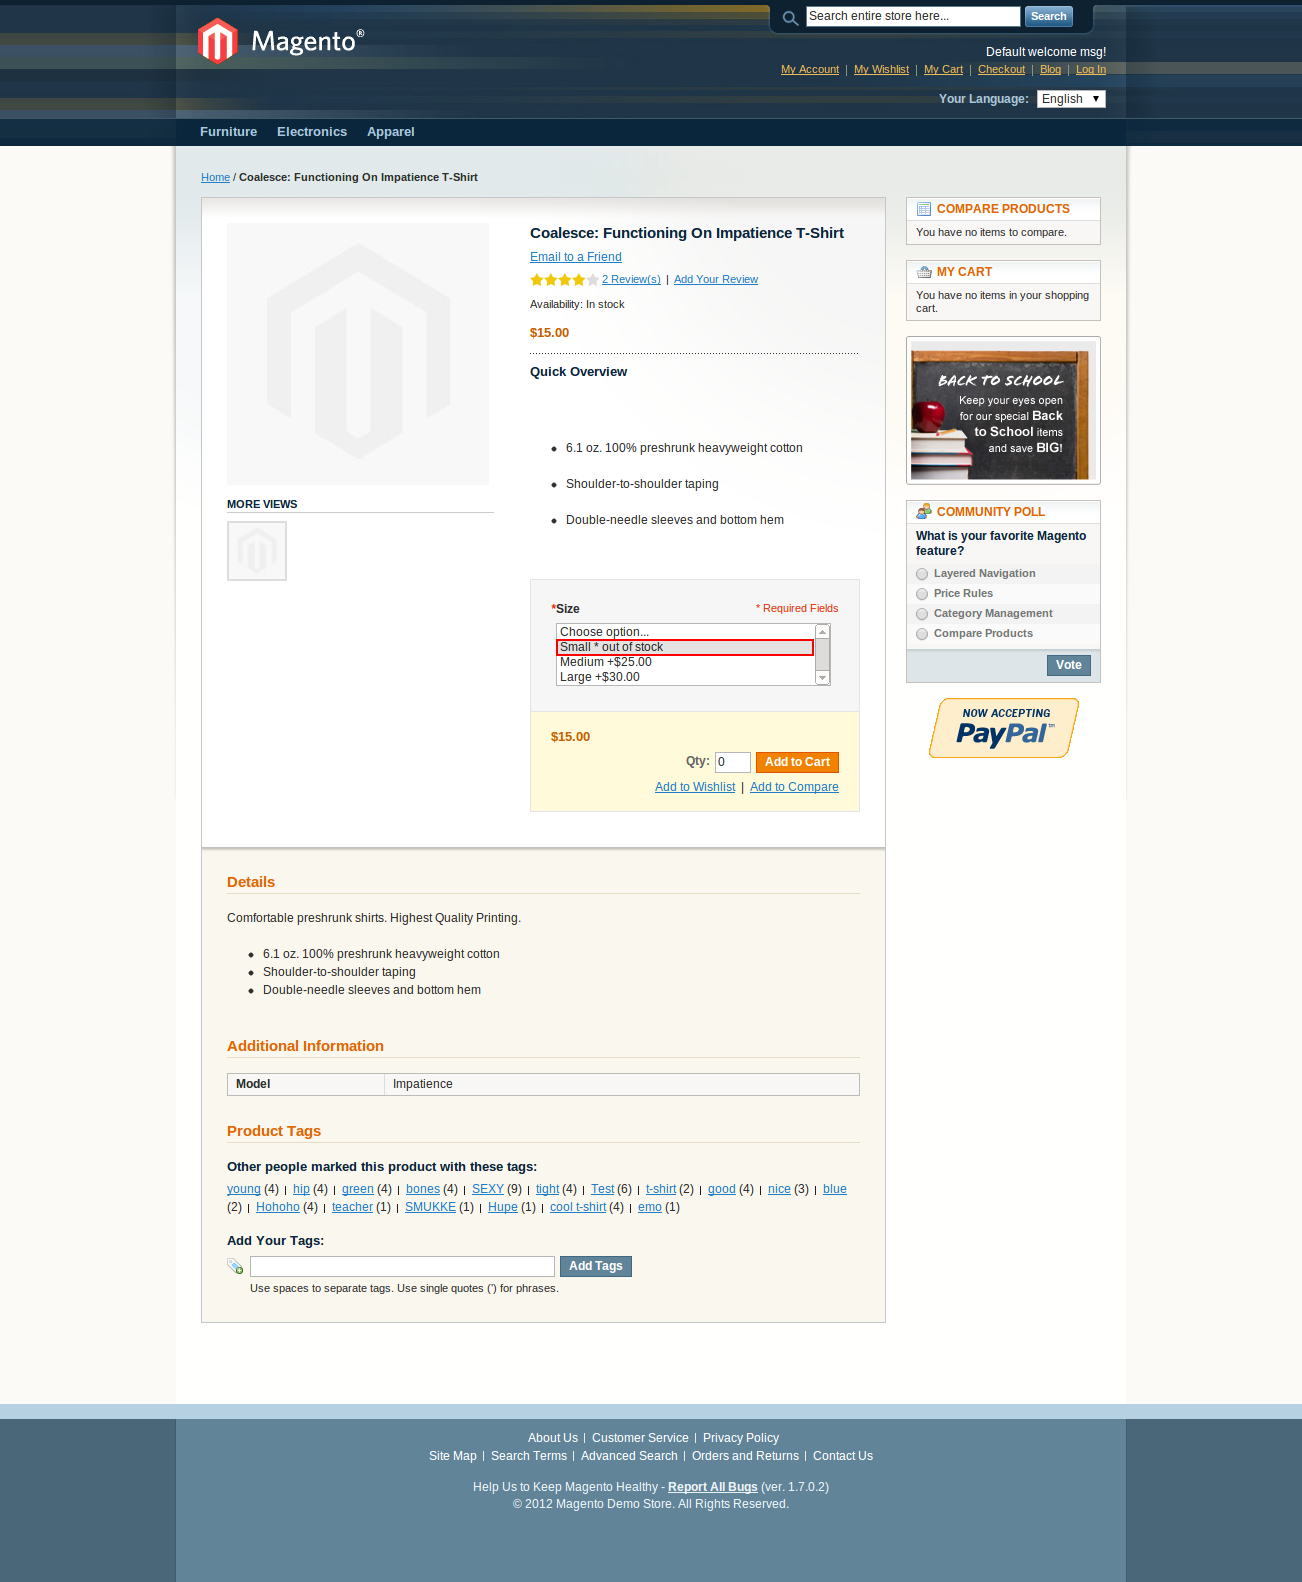 Magento configurable product options out of stock